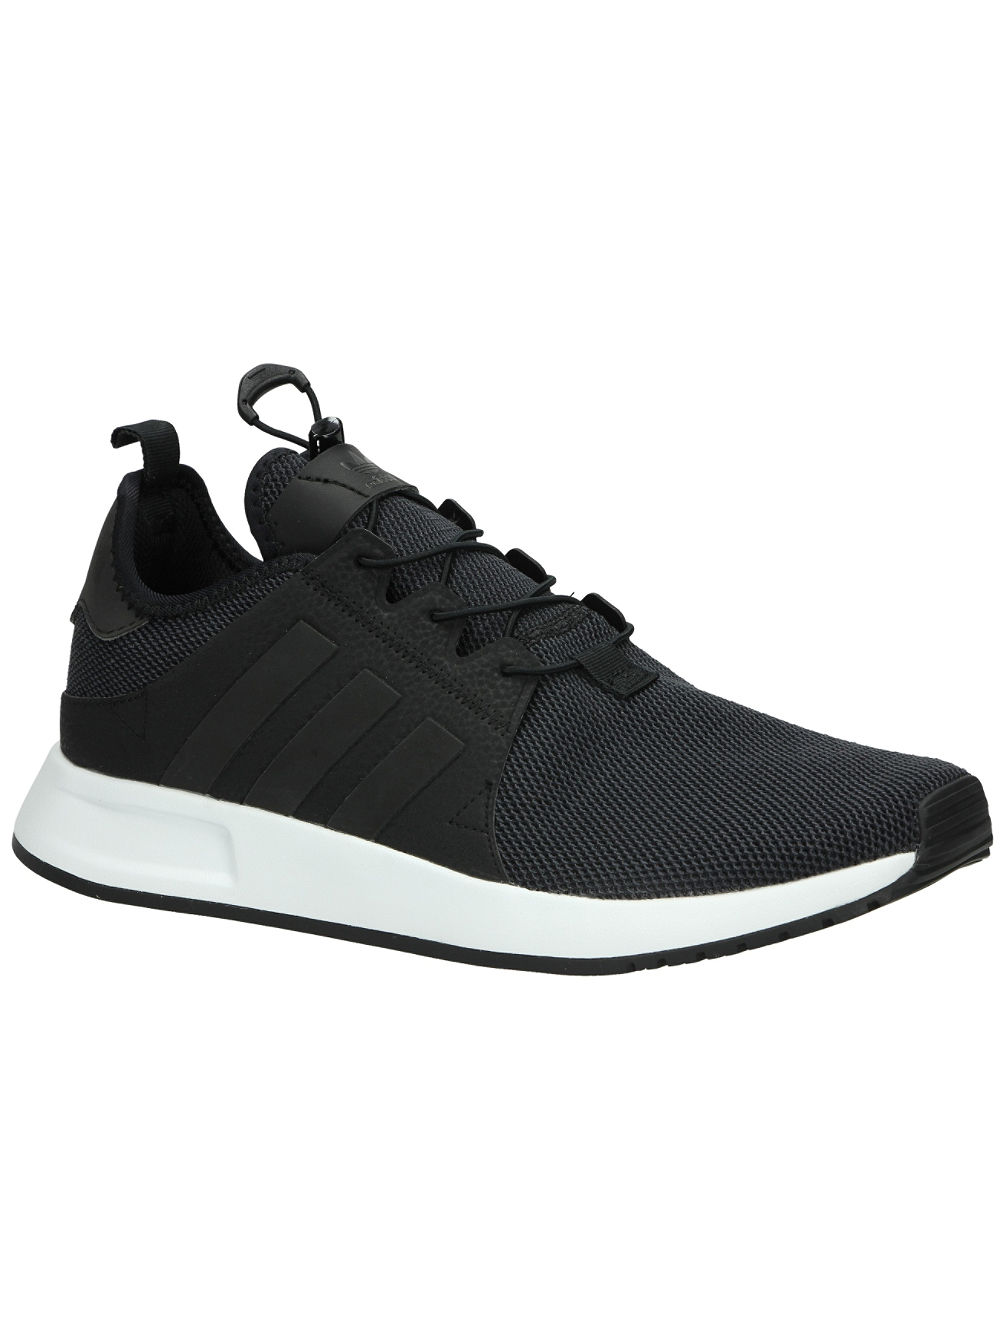 Find adidas x plr core footwear tennarit . Shop every store on the ... 1ea922393